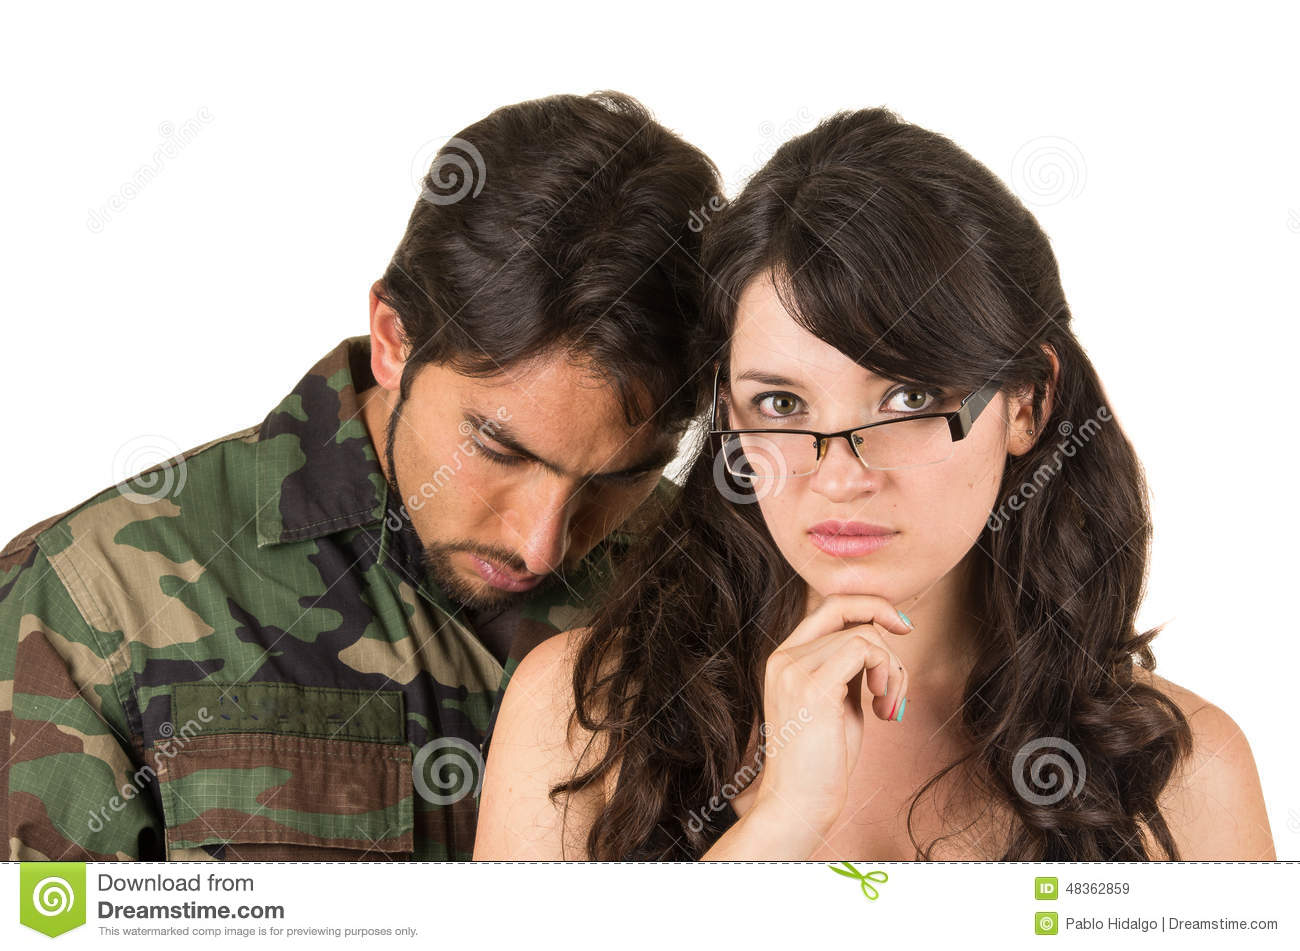 A ptsd dating veteran with Partners of